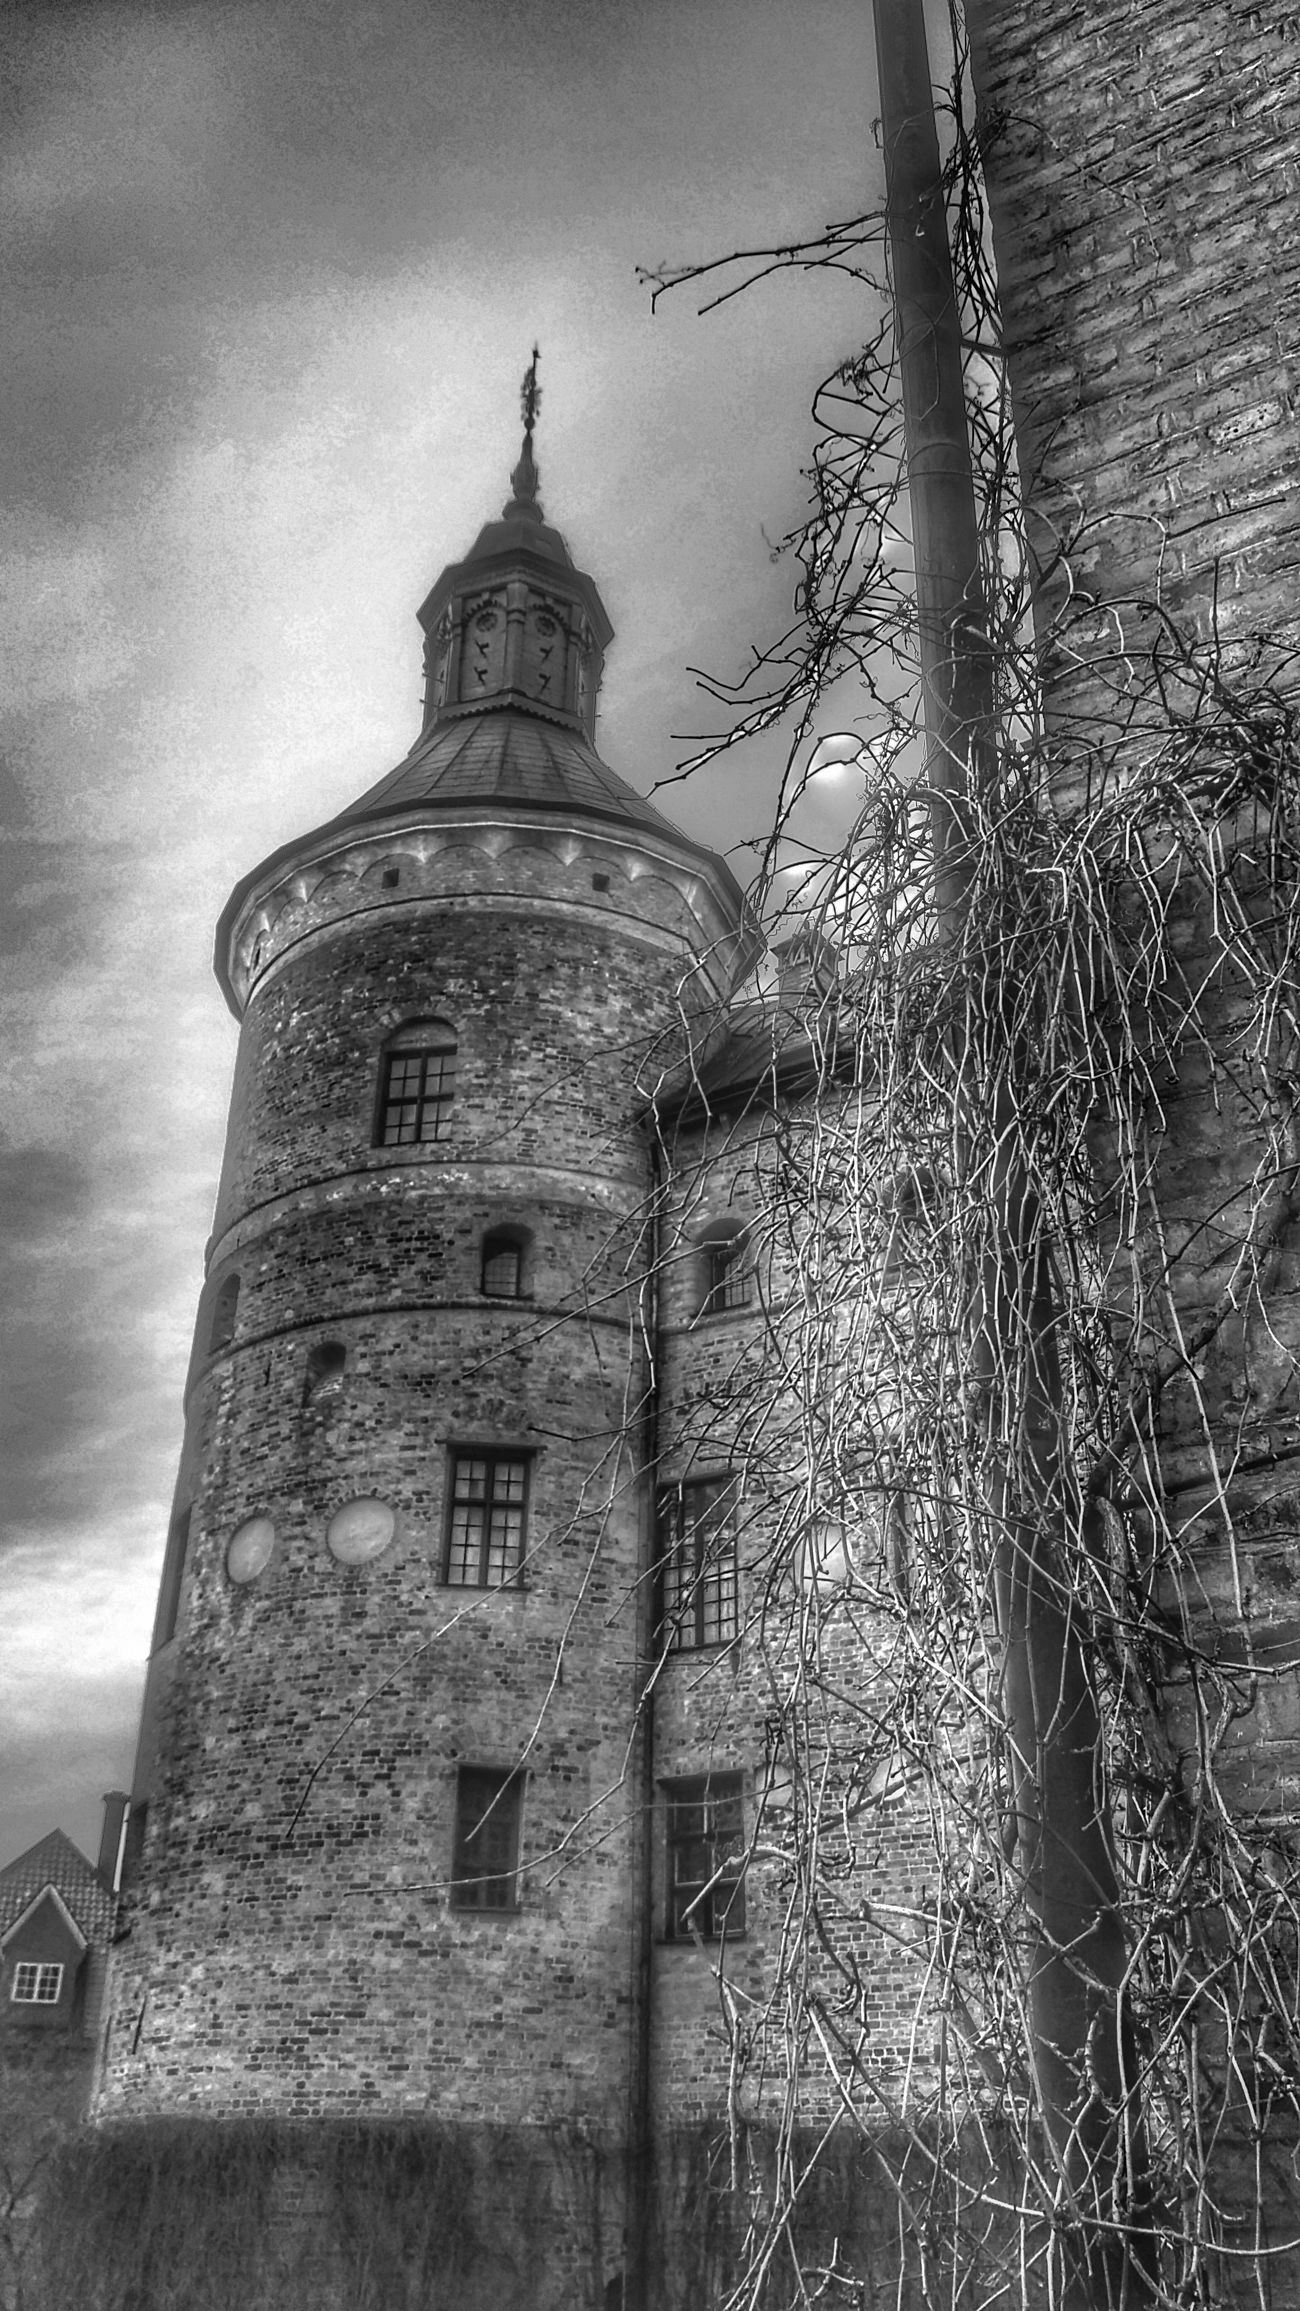 Gripsholm Castle View  Architecture Built Structure History Low Angle View Building Exterior Outdoors Street Photography EyeEm Best Shots Castle View  Travel Architecture Streetphotography